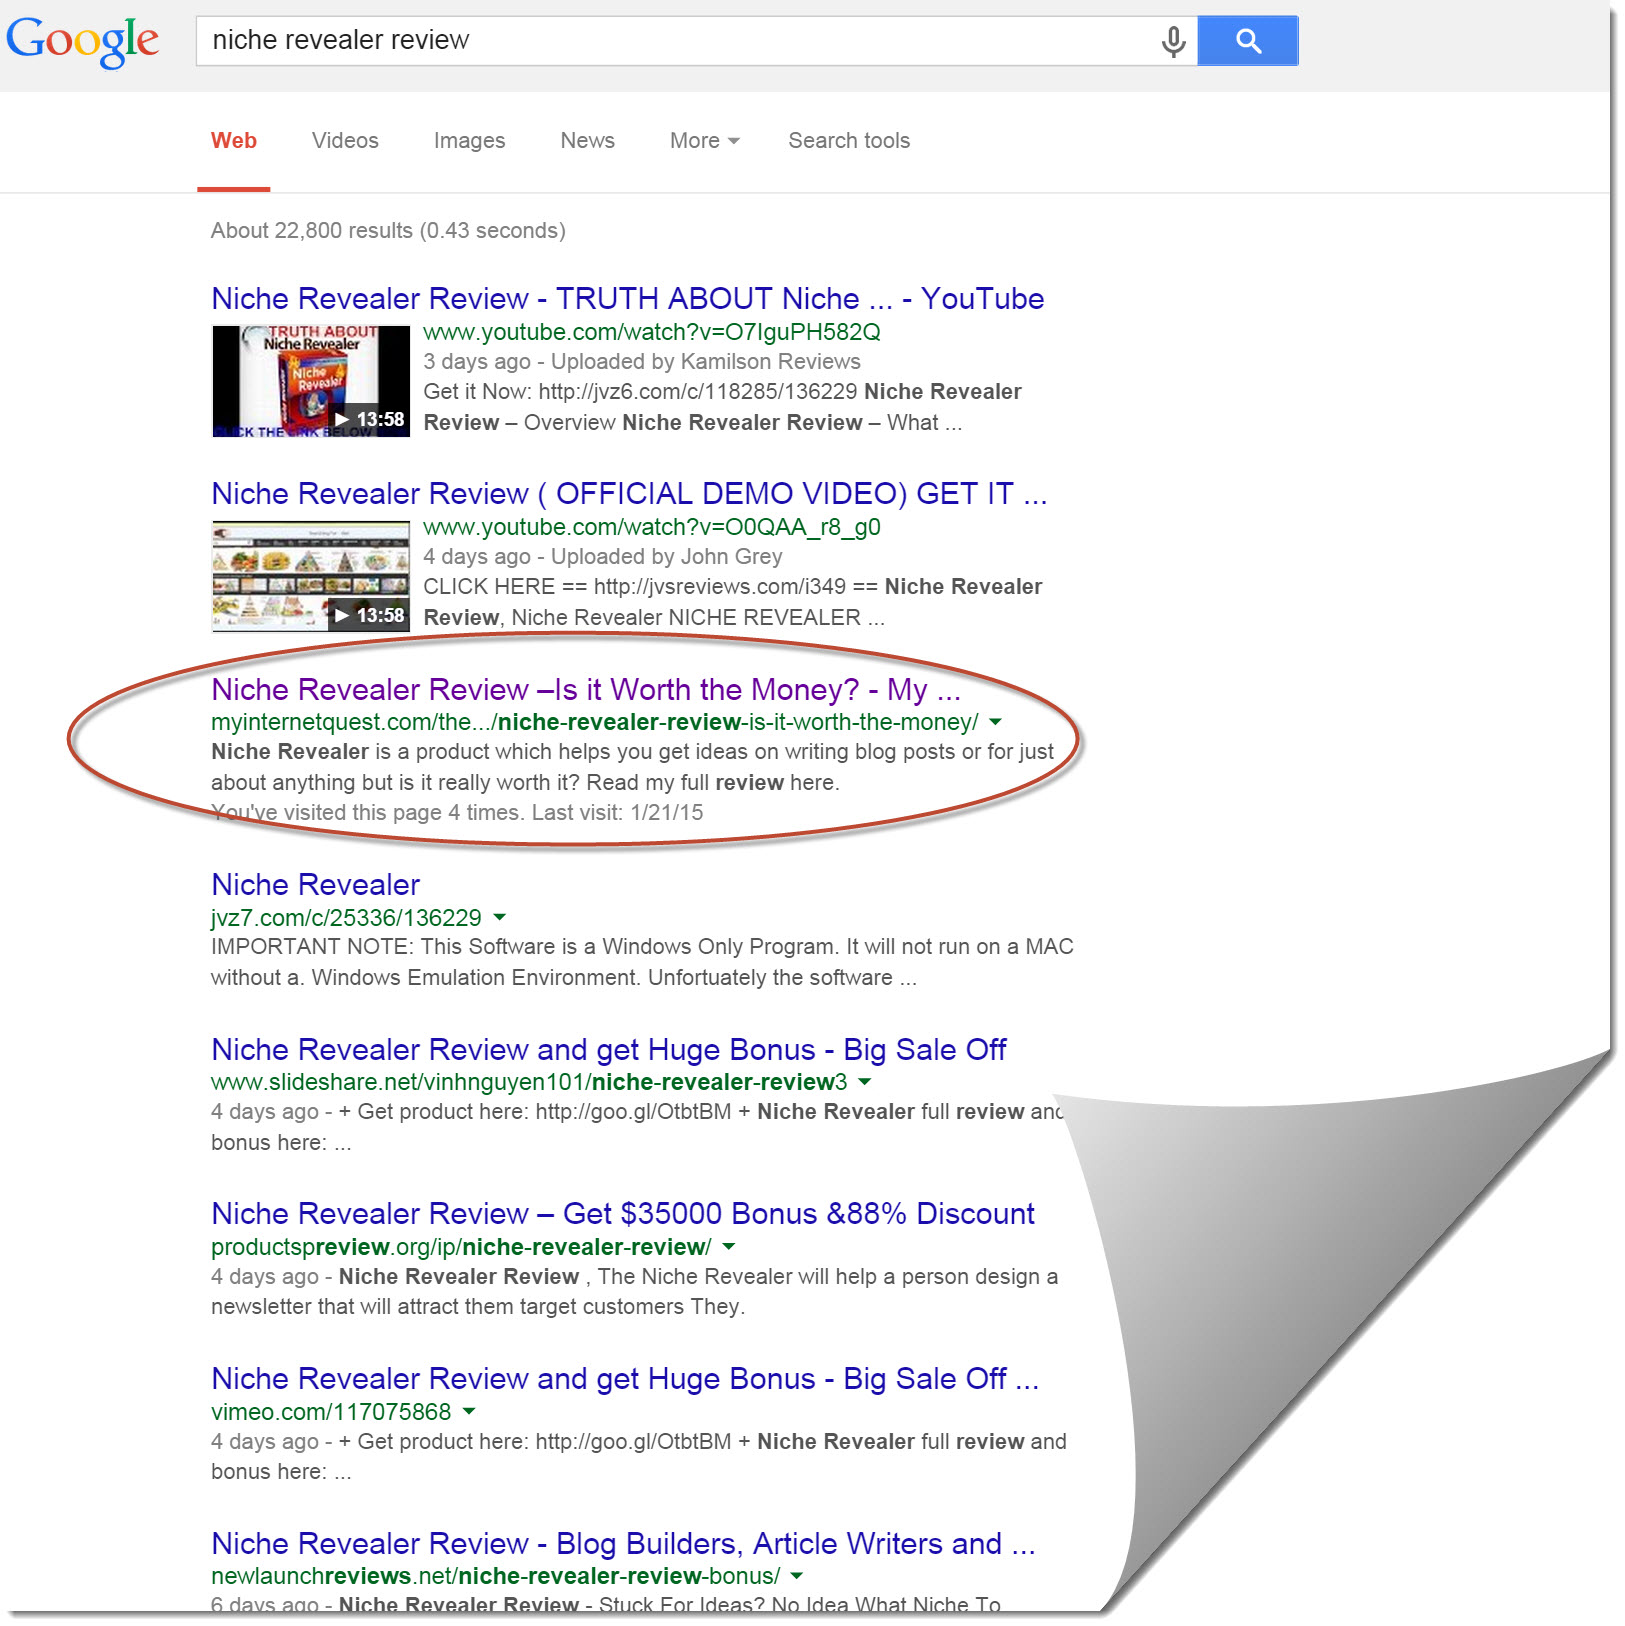 Google Search results for Niche Revealer Review